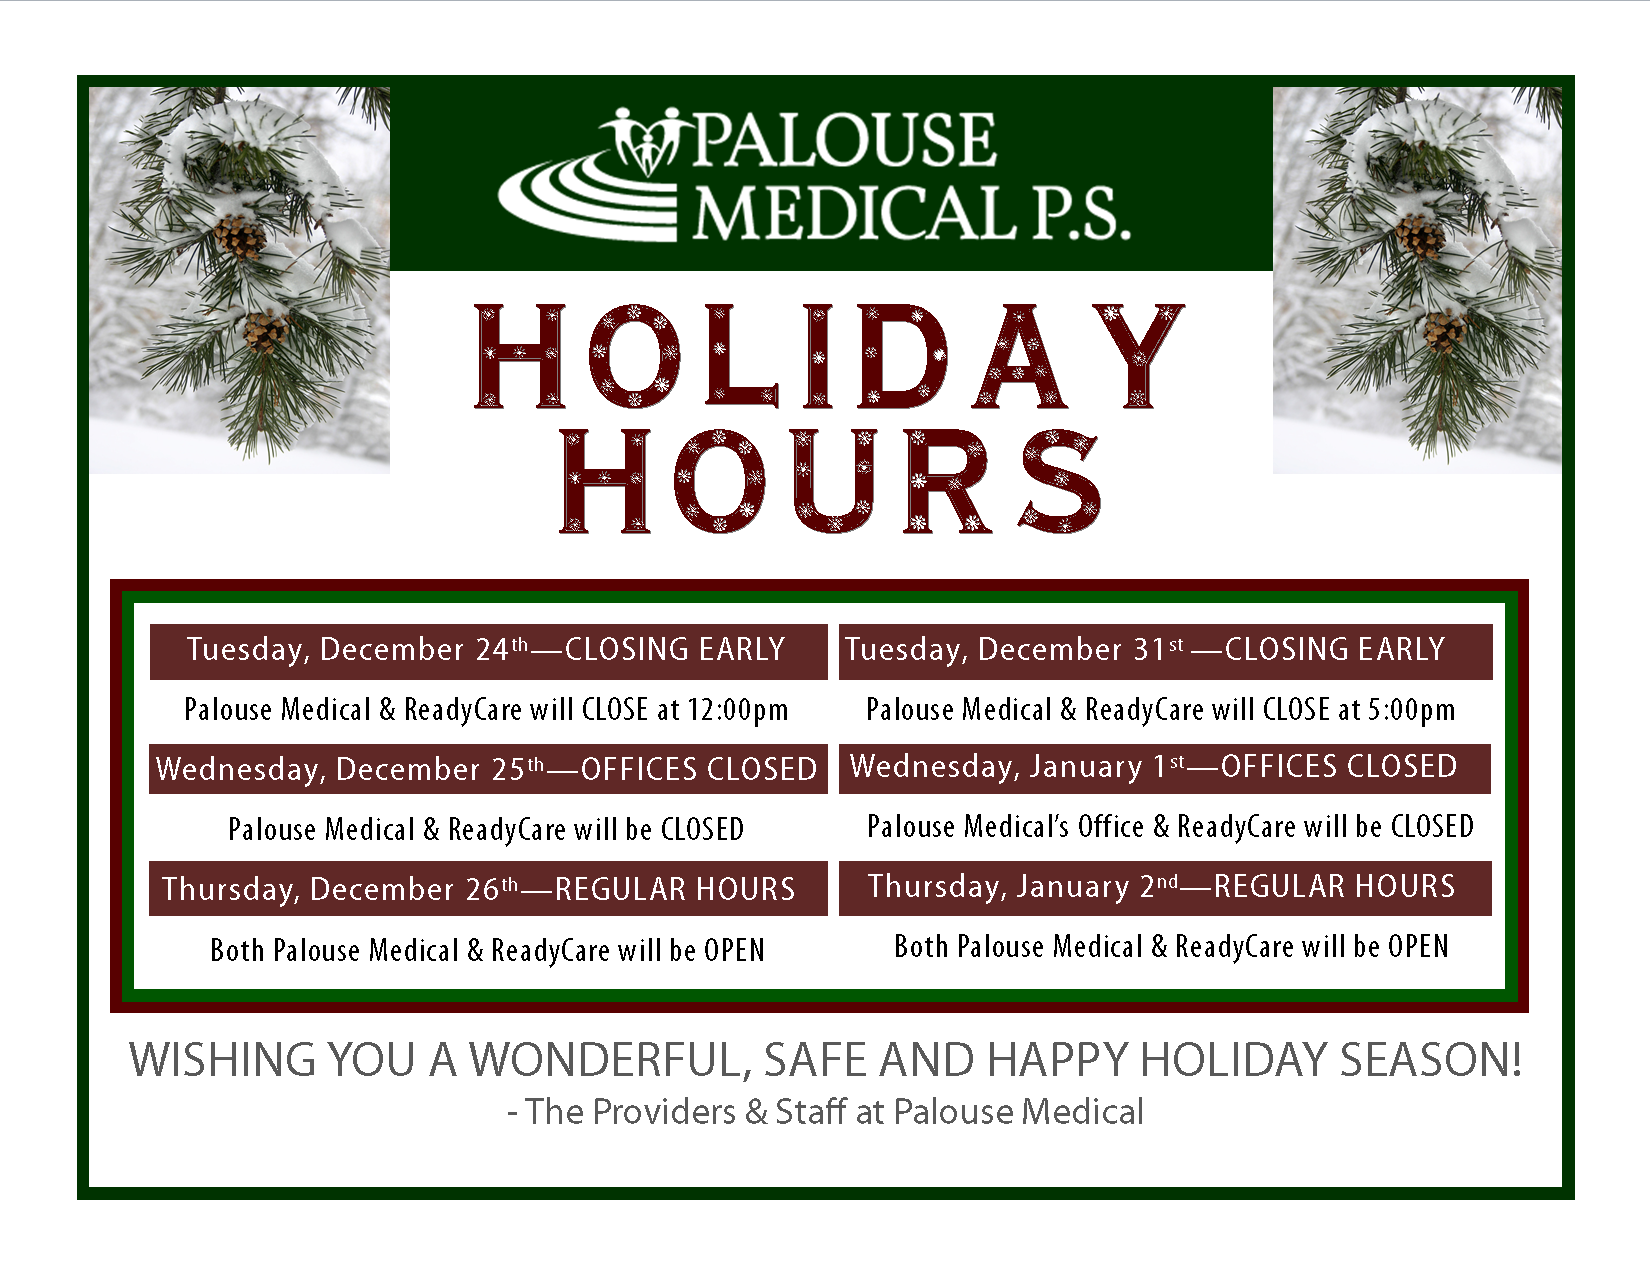 Winter Holiday Hours - 2013-2014